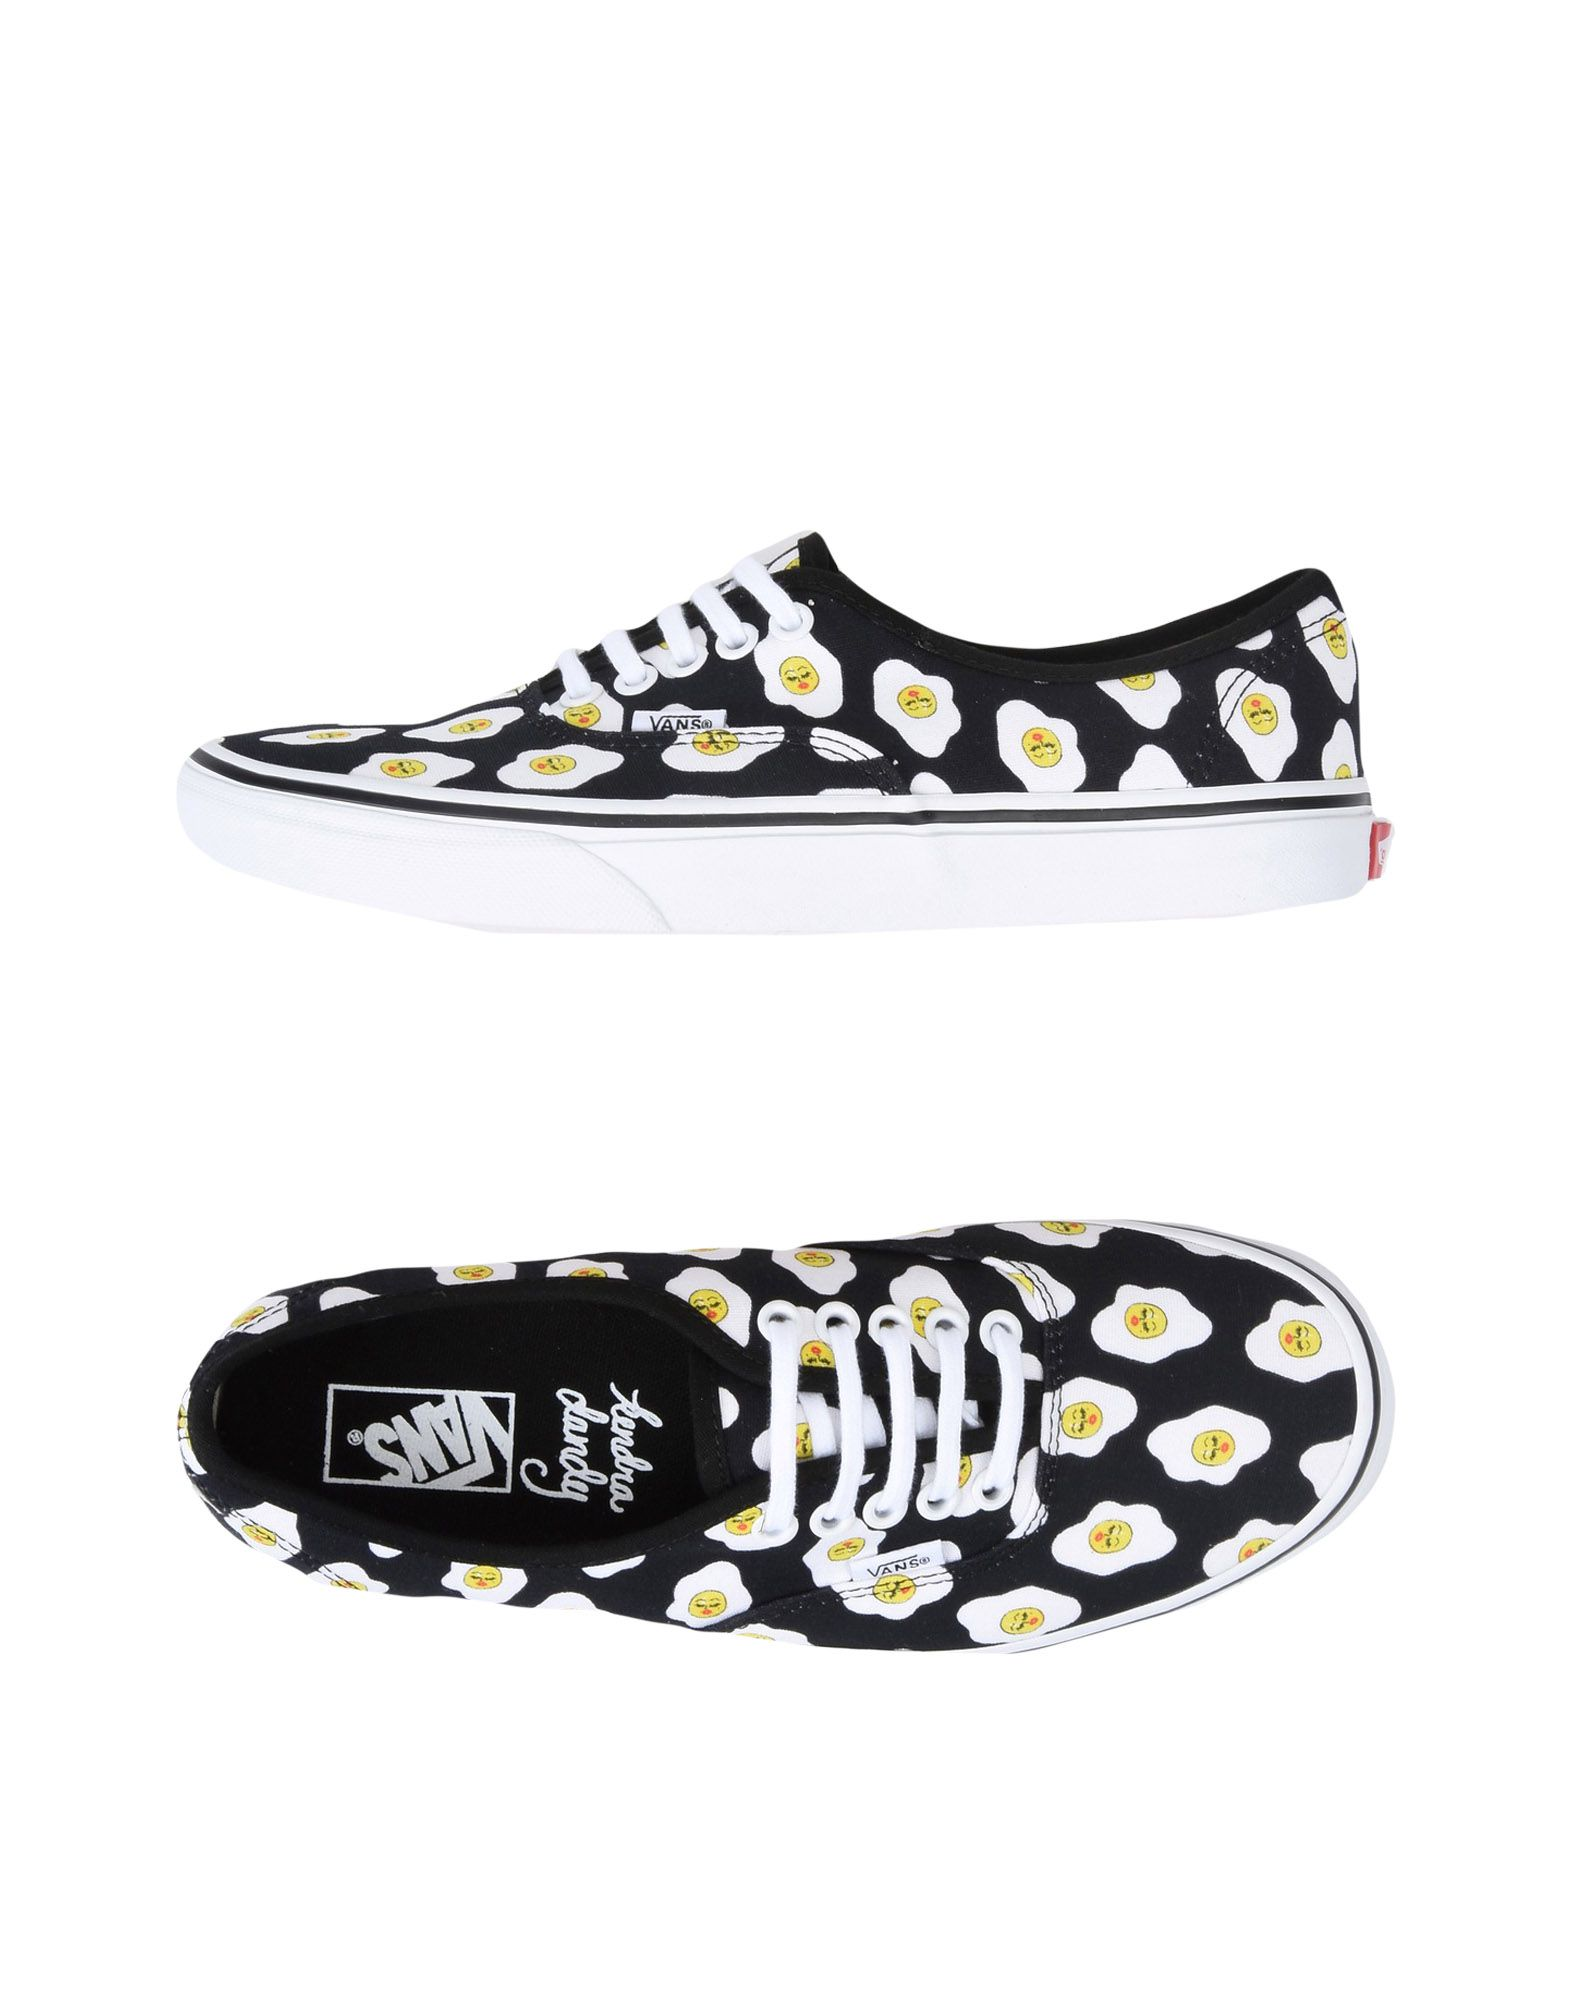 Sneakers Vans Ua 11238777BW Authentic - Kendra Dandy - Donna - 11238777BW Ua 6c4126